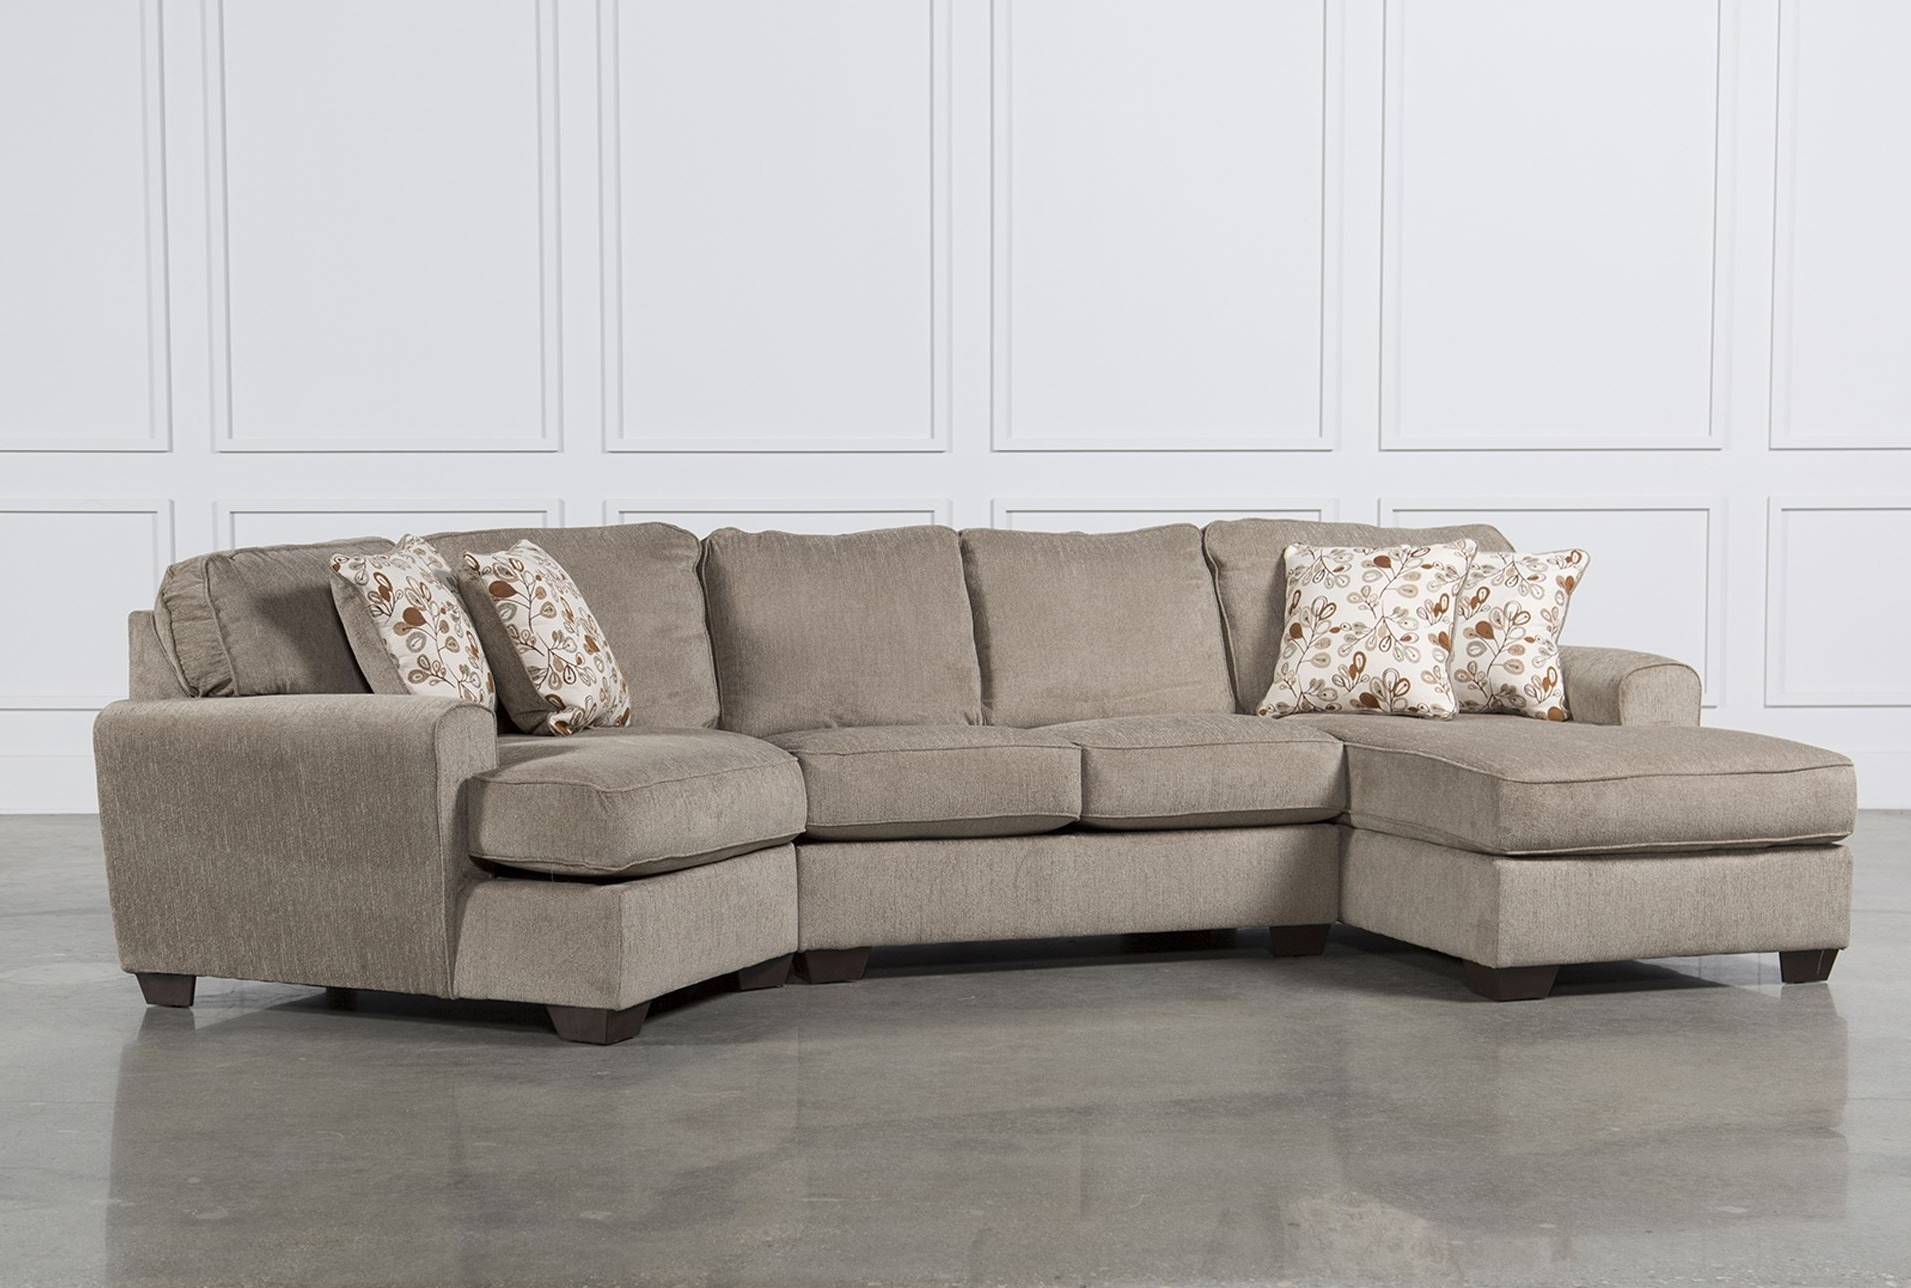 Fancy Sectional Sofa With Cuddler 52 For Contemporary Sofa Inside Most Recent Cuddler Sectional Sofas (View 4 of 20)